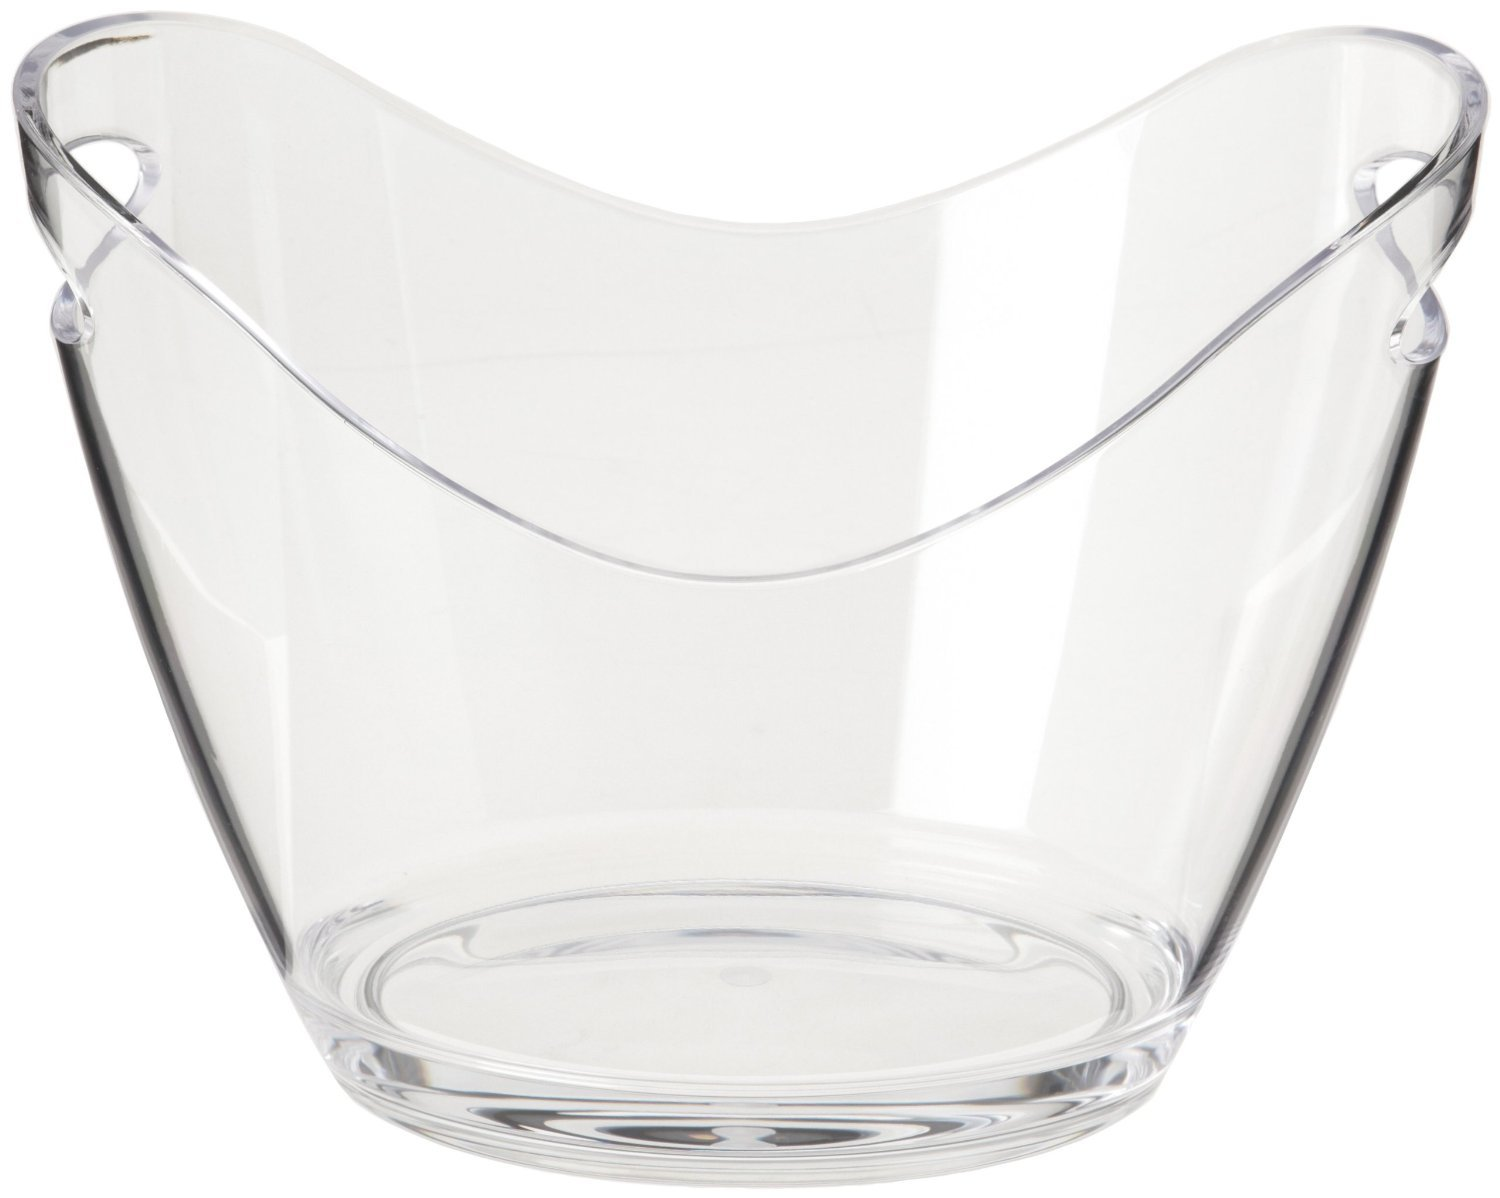 Agog - Ice Bucket Clear Acrylic 3.5 Liter Good for up to 2 Wine or Champagne Bottles Ice Bucket by AGOG